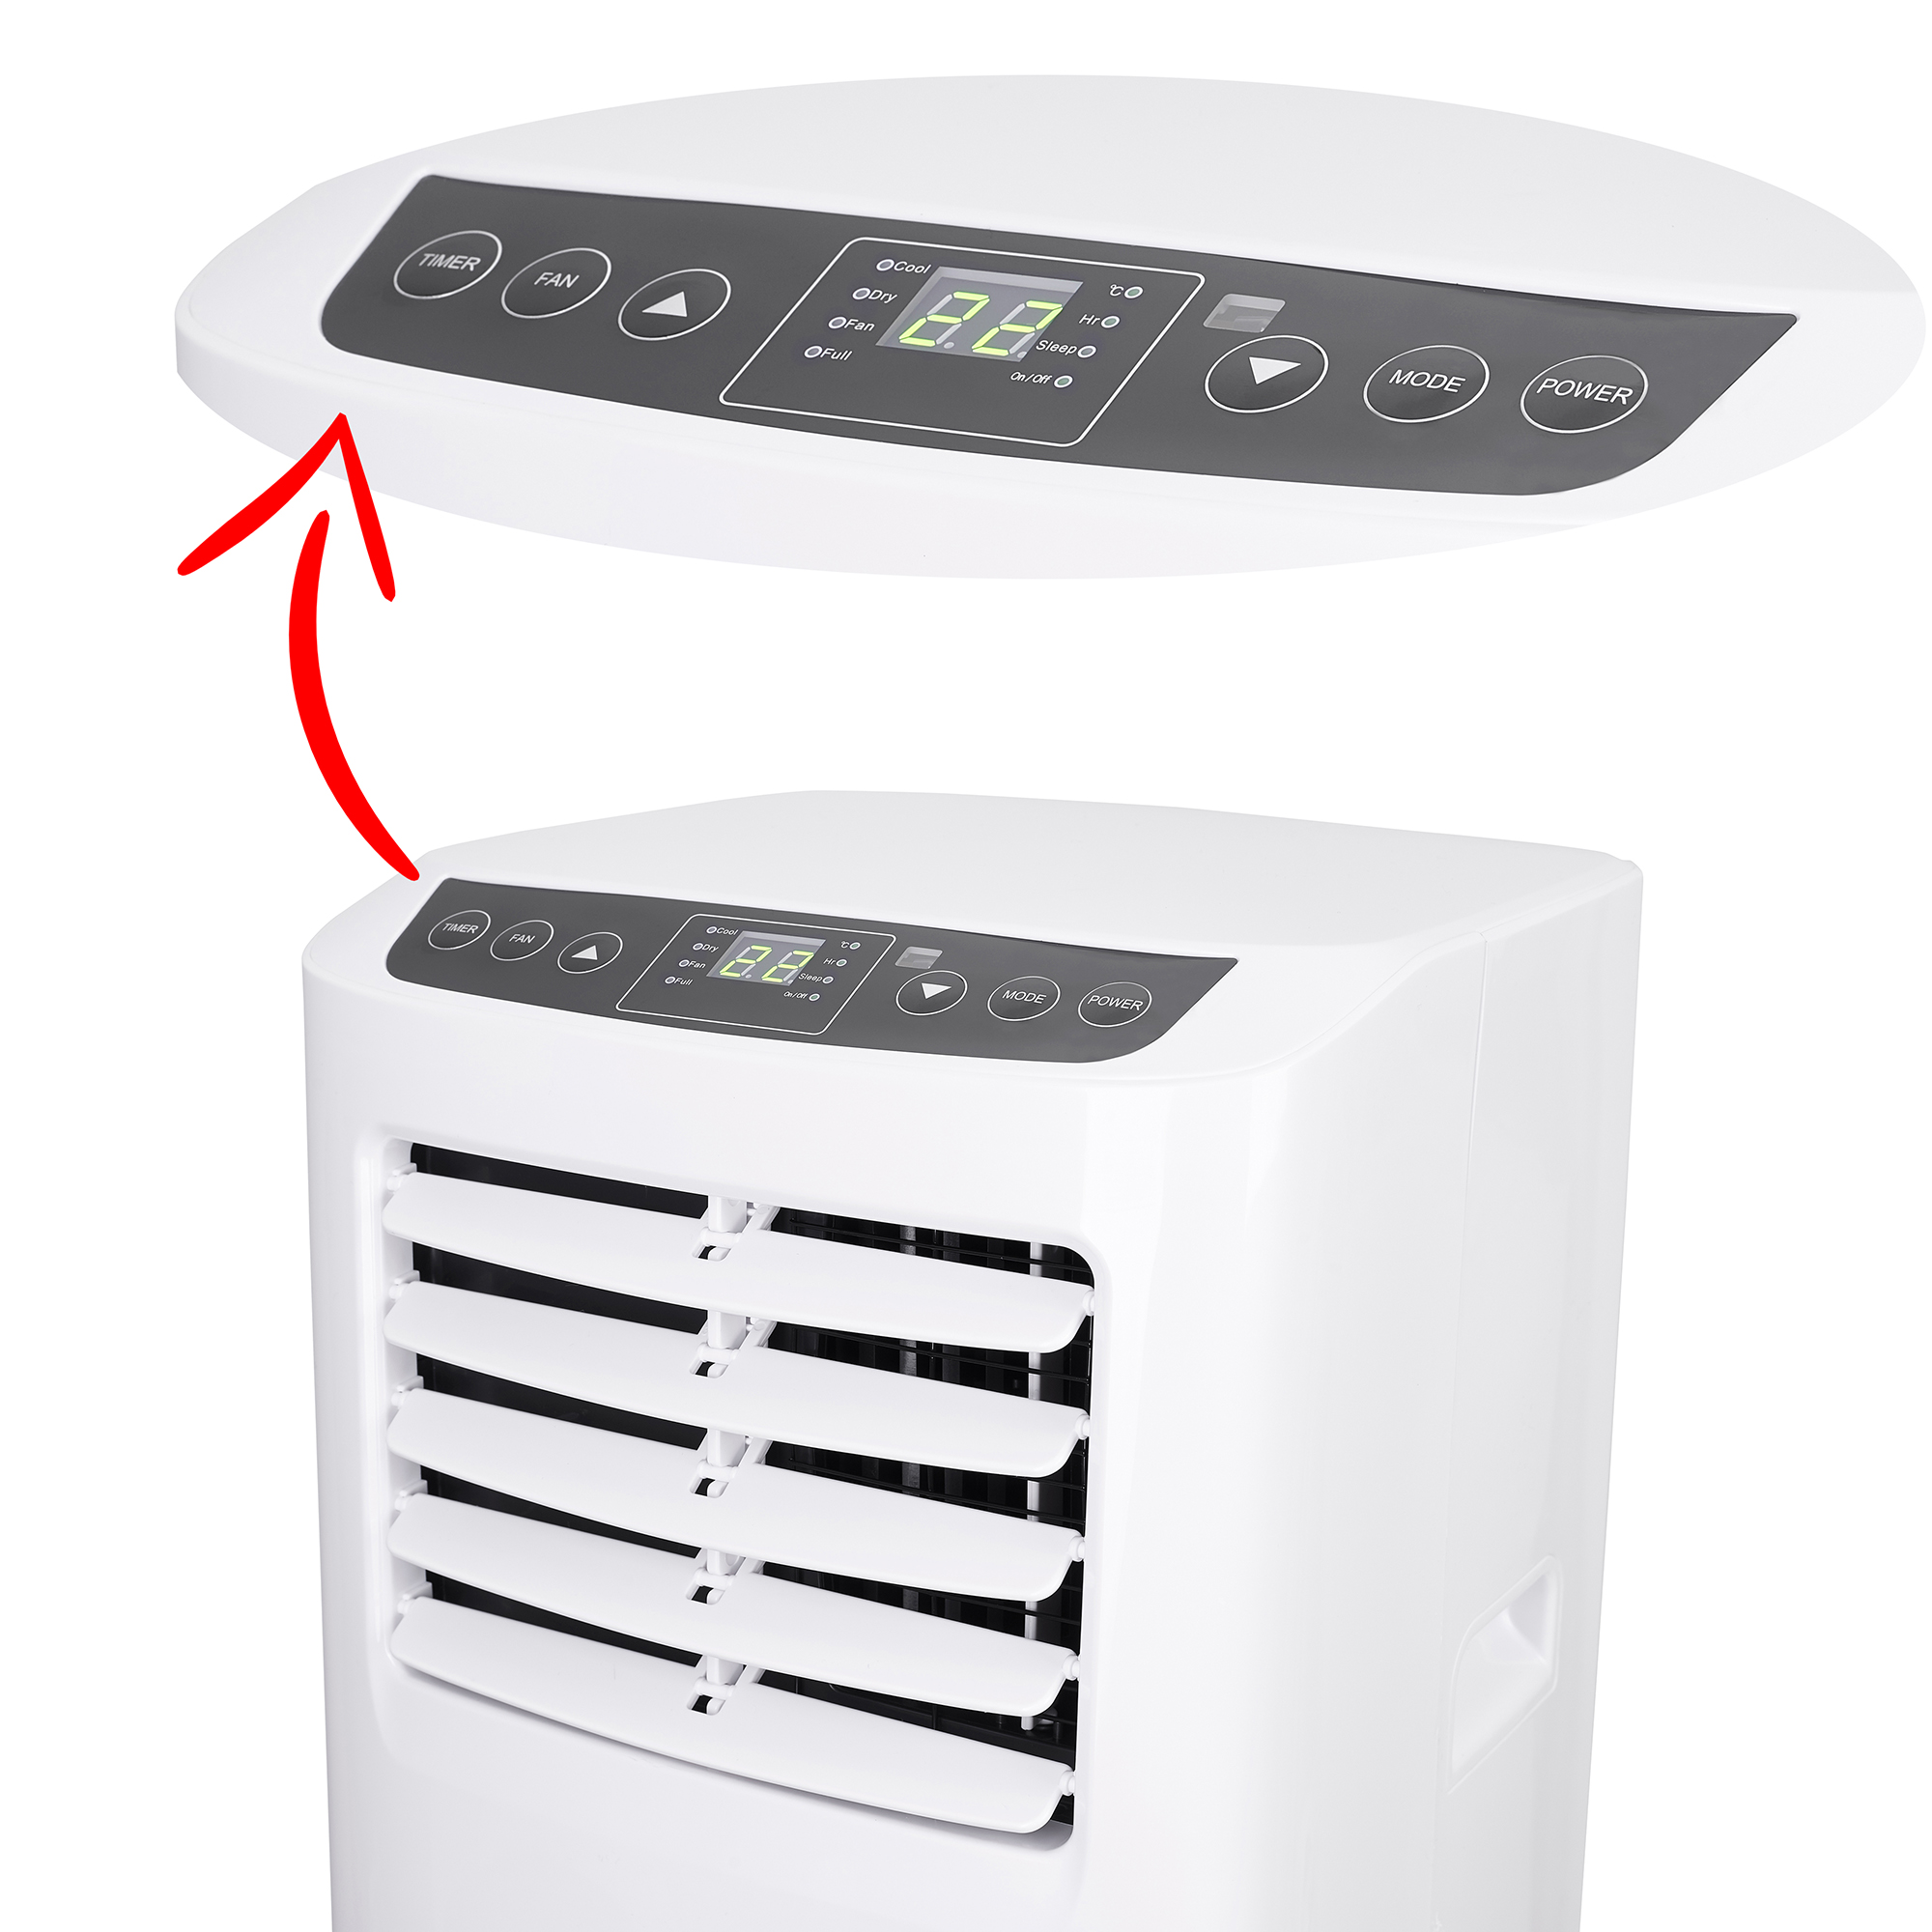 The AD 7916 air conditioner has ventilation, cooling and dehumidification functions, making it a very useful device all year round. To make it comfortable to use, the air conditioner is equipped with a remote control and a timer to turn it on or off autom